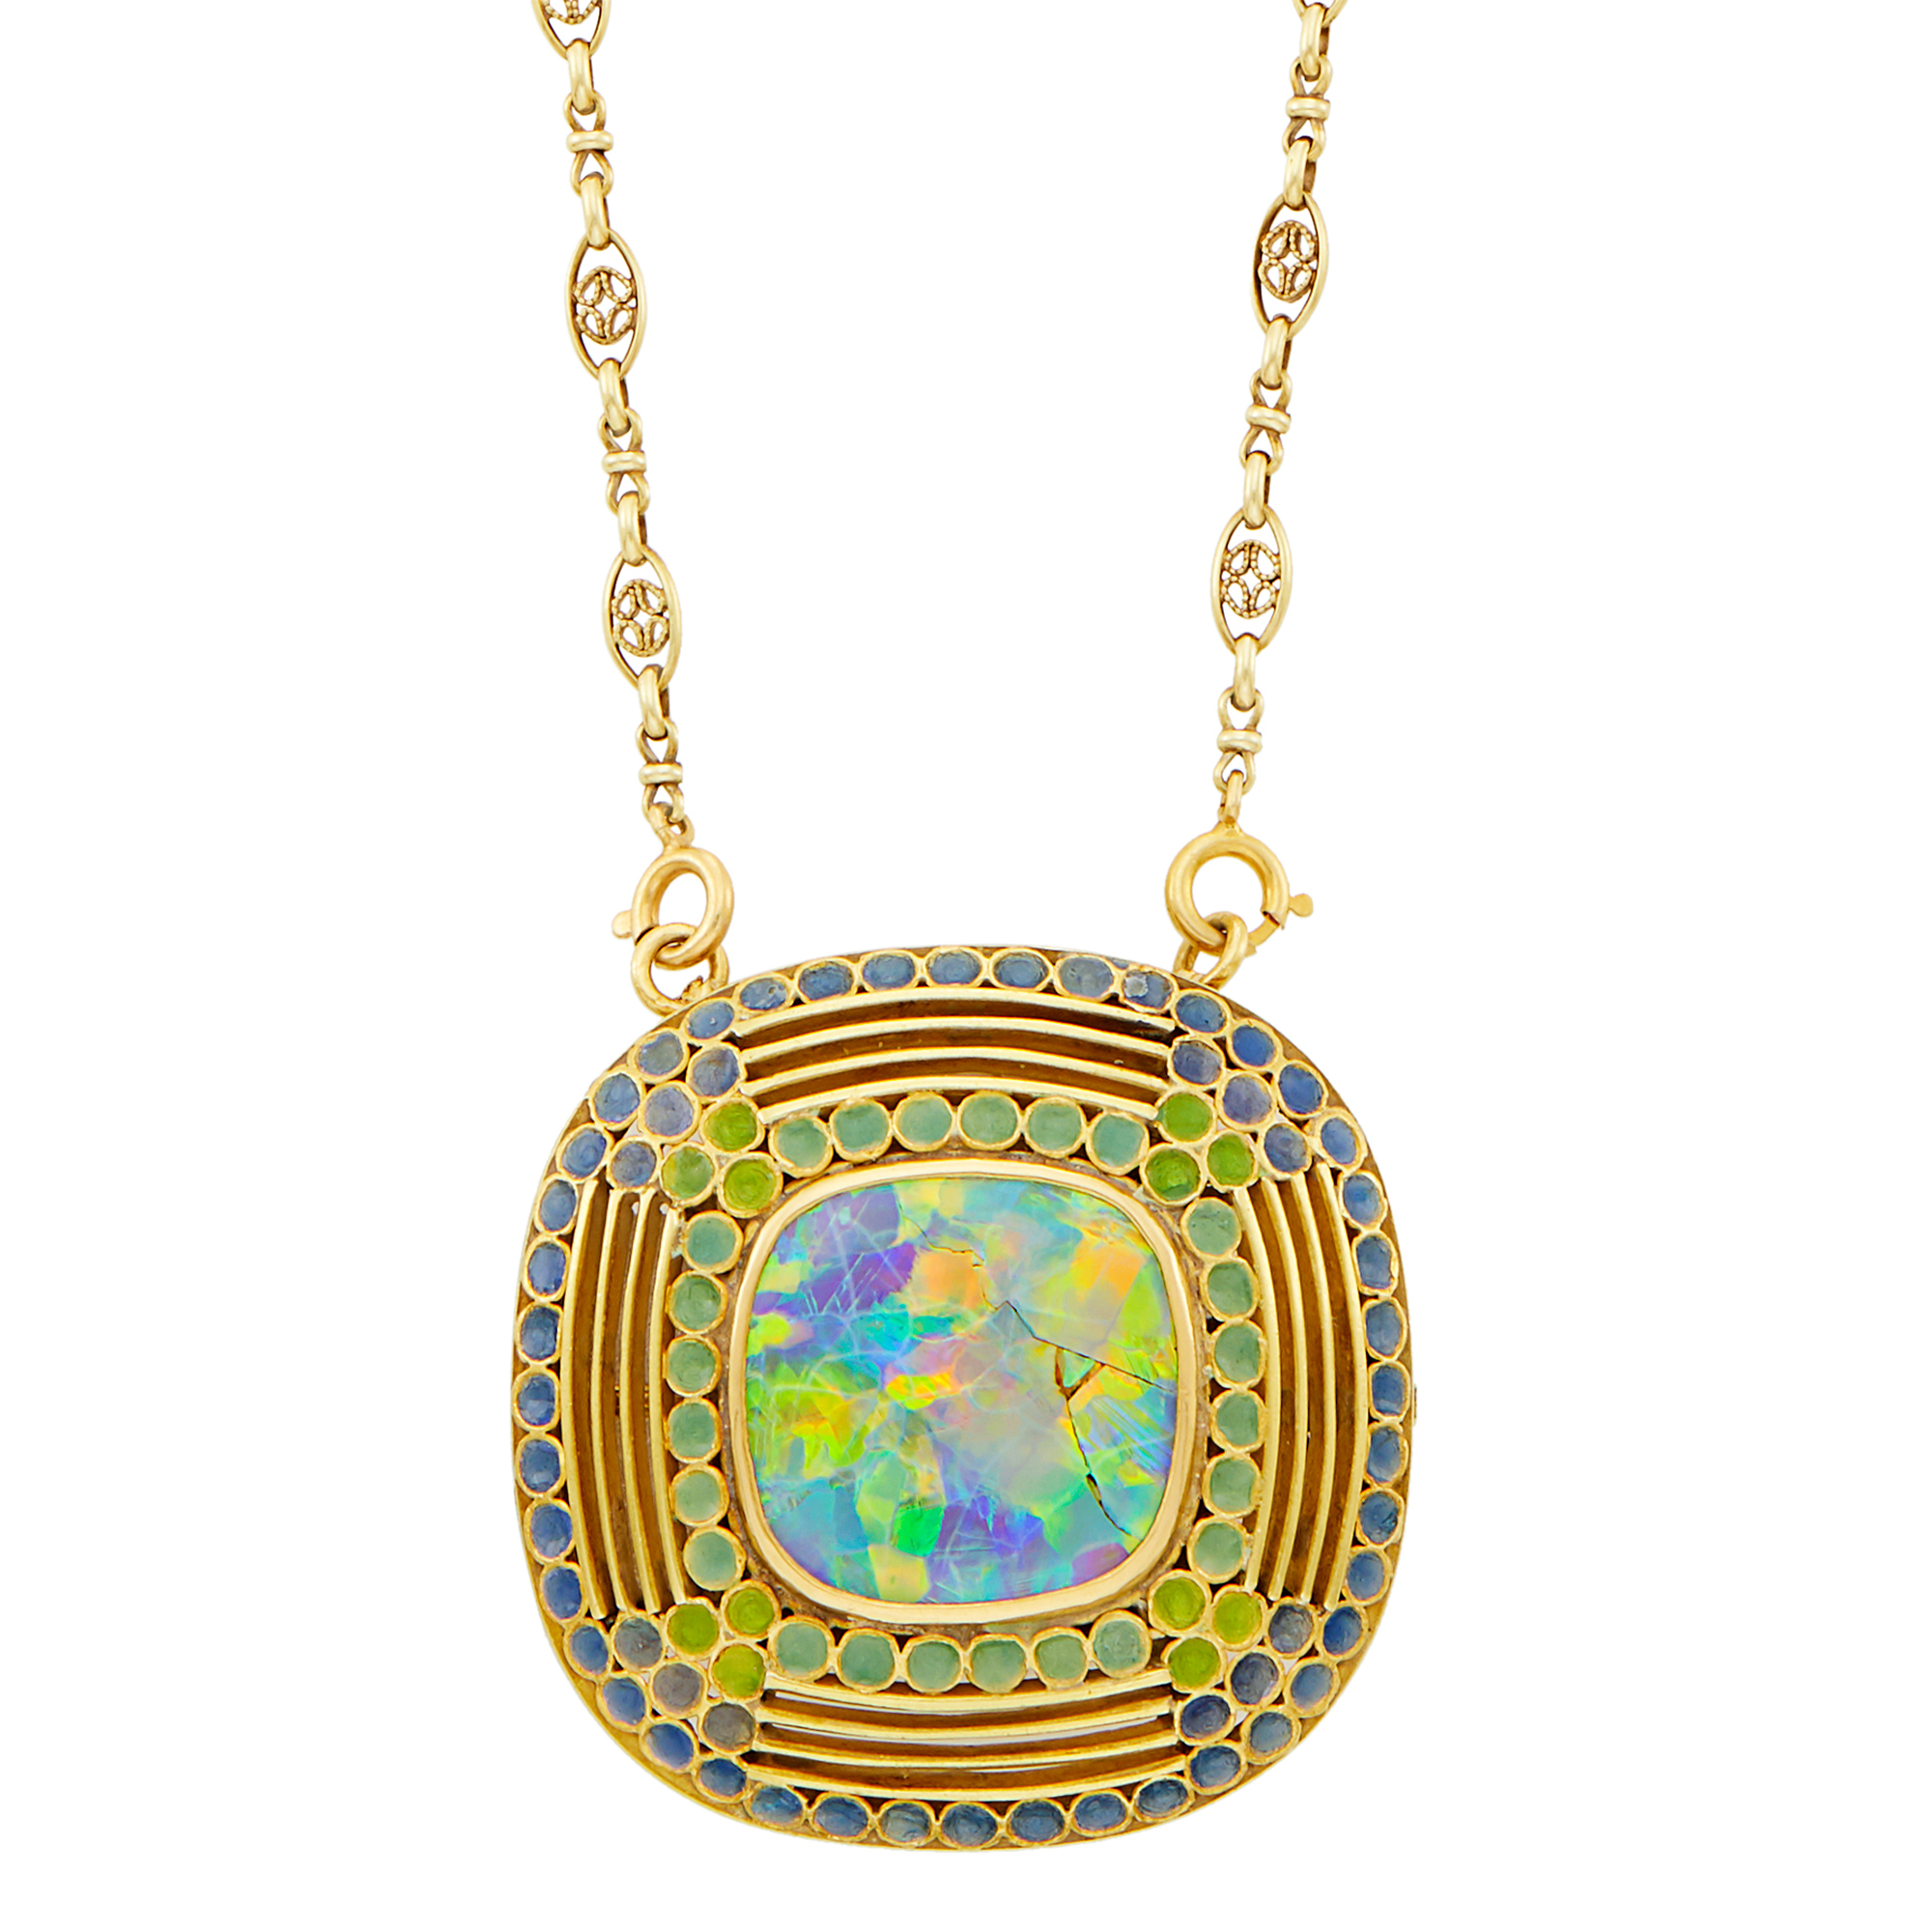 Lot image - By Louis Comfort Tiffany for Tiffany & Co. Art Nouveau Gold, Opal and Enamel Pendant-Brooch Necklace